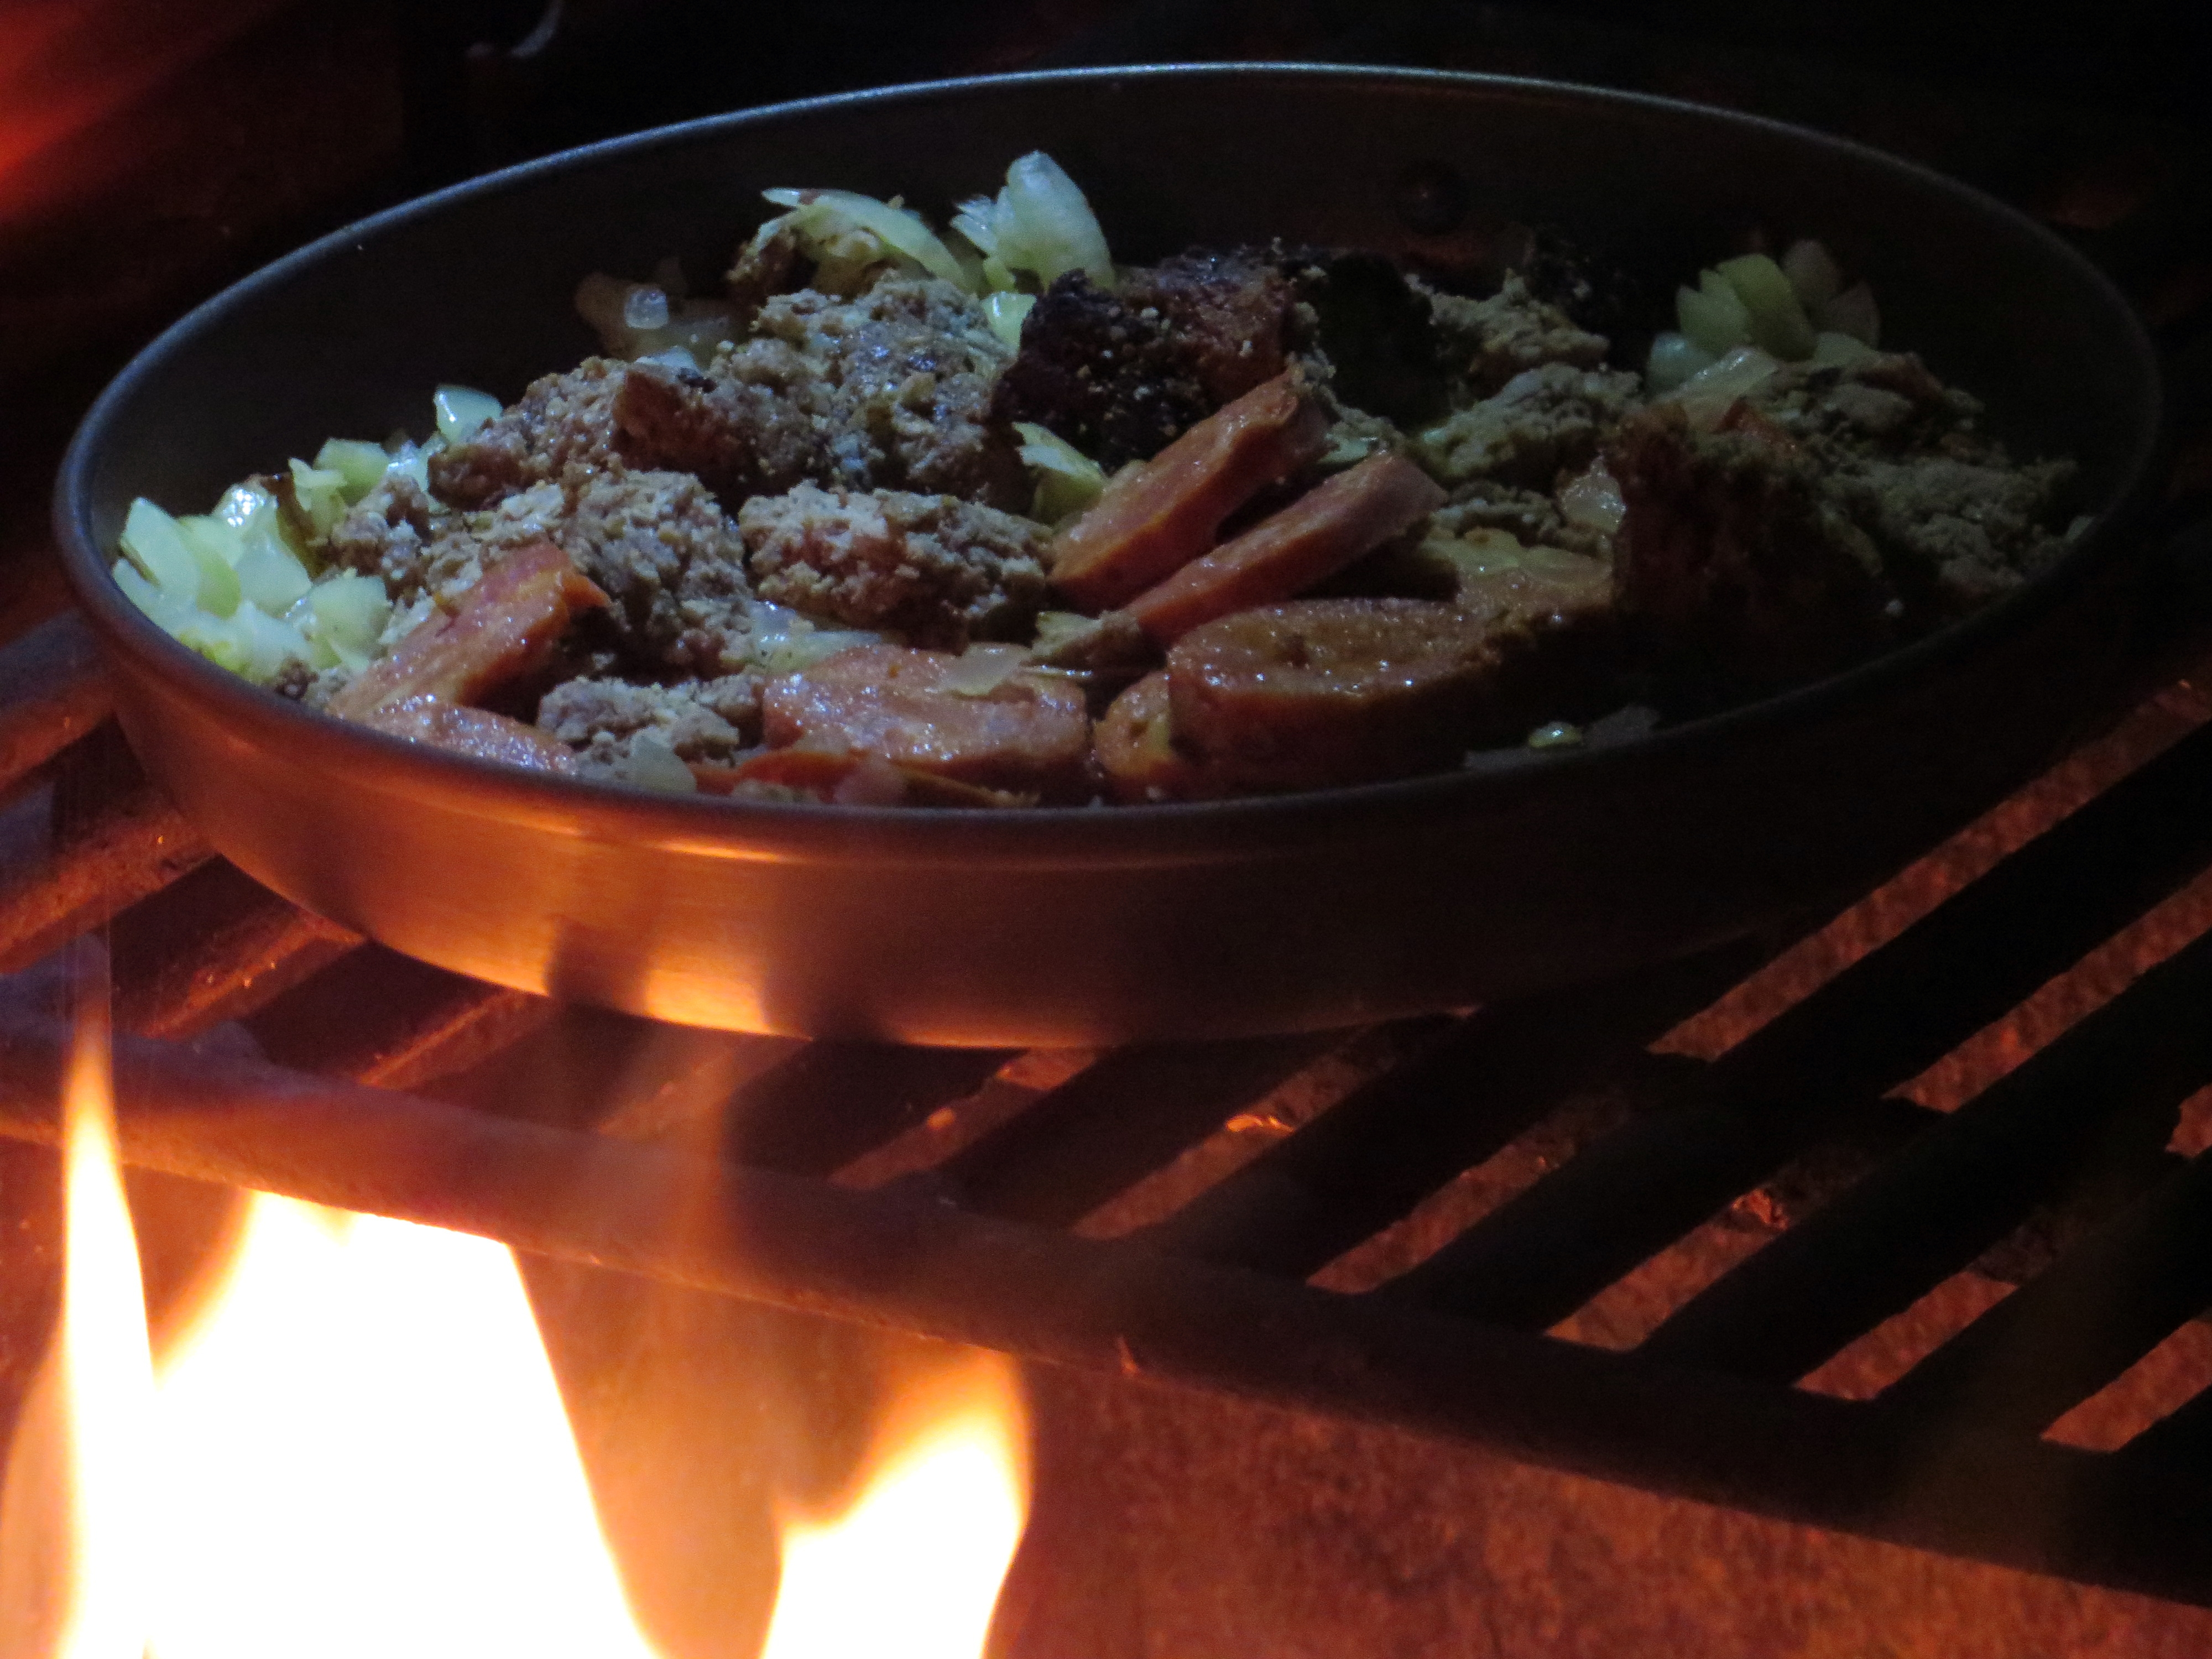 The seasoned outdoorsman knows that everything tastes better cooked over the live flame of a campfire. (photo by D. Speredelozzi)